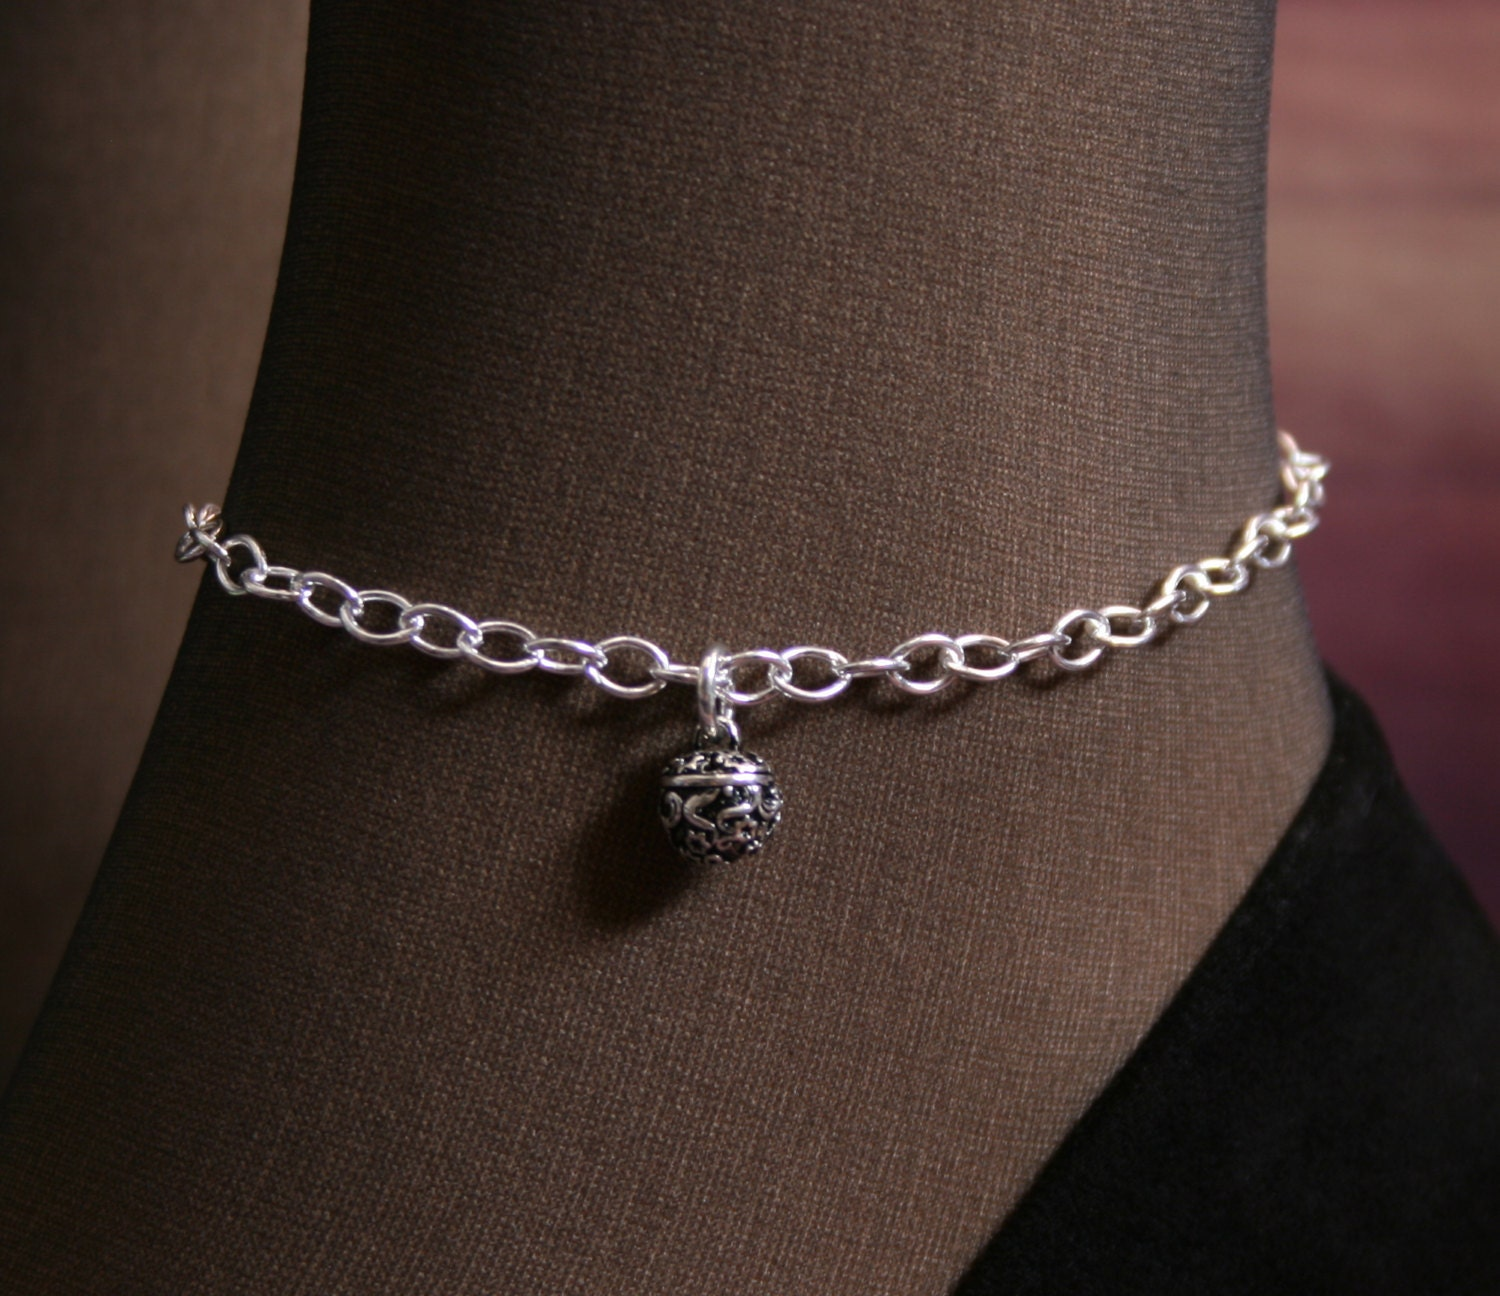 sabrinasilver anklets sterling body inch jewelry anklet silver ankles impl rings shopcart with toe bells fits home